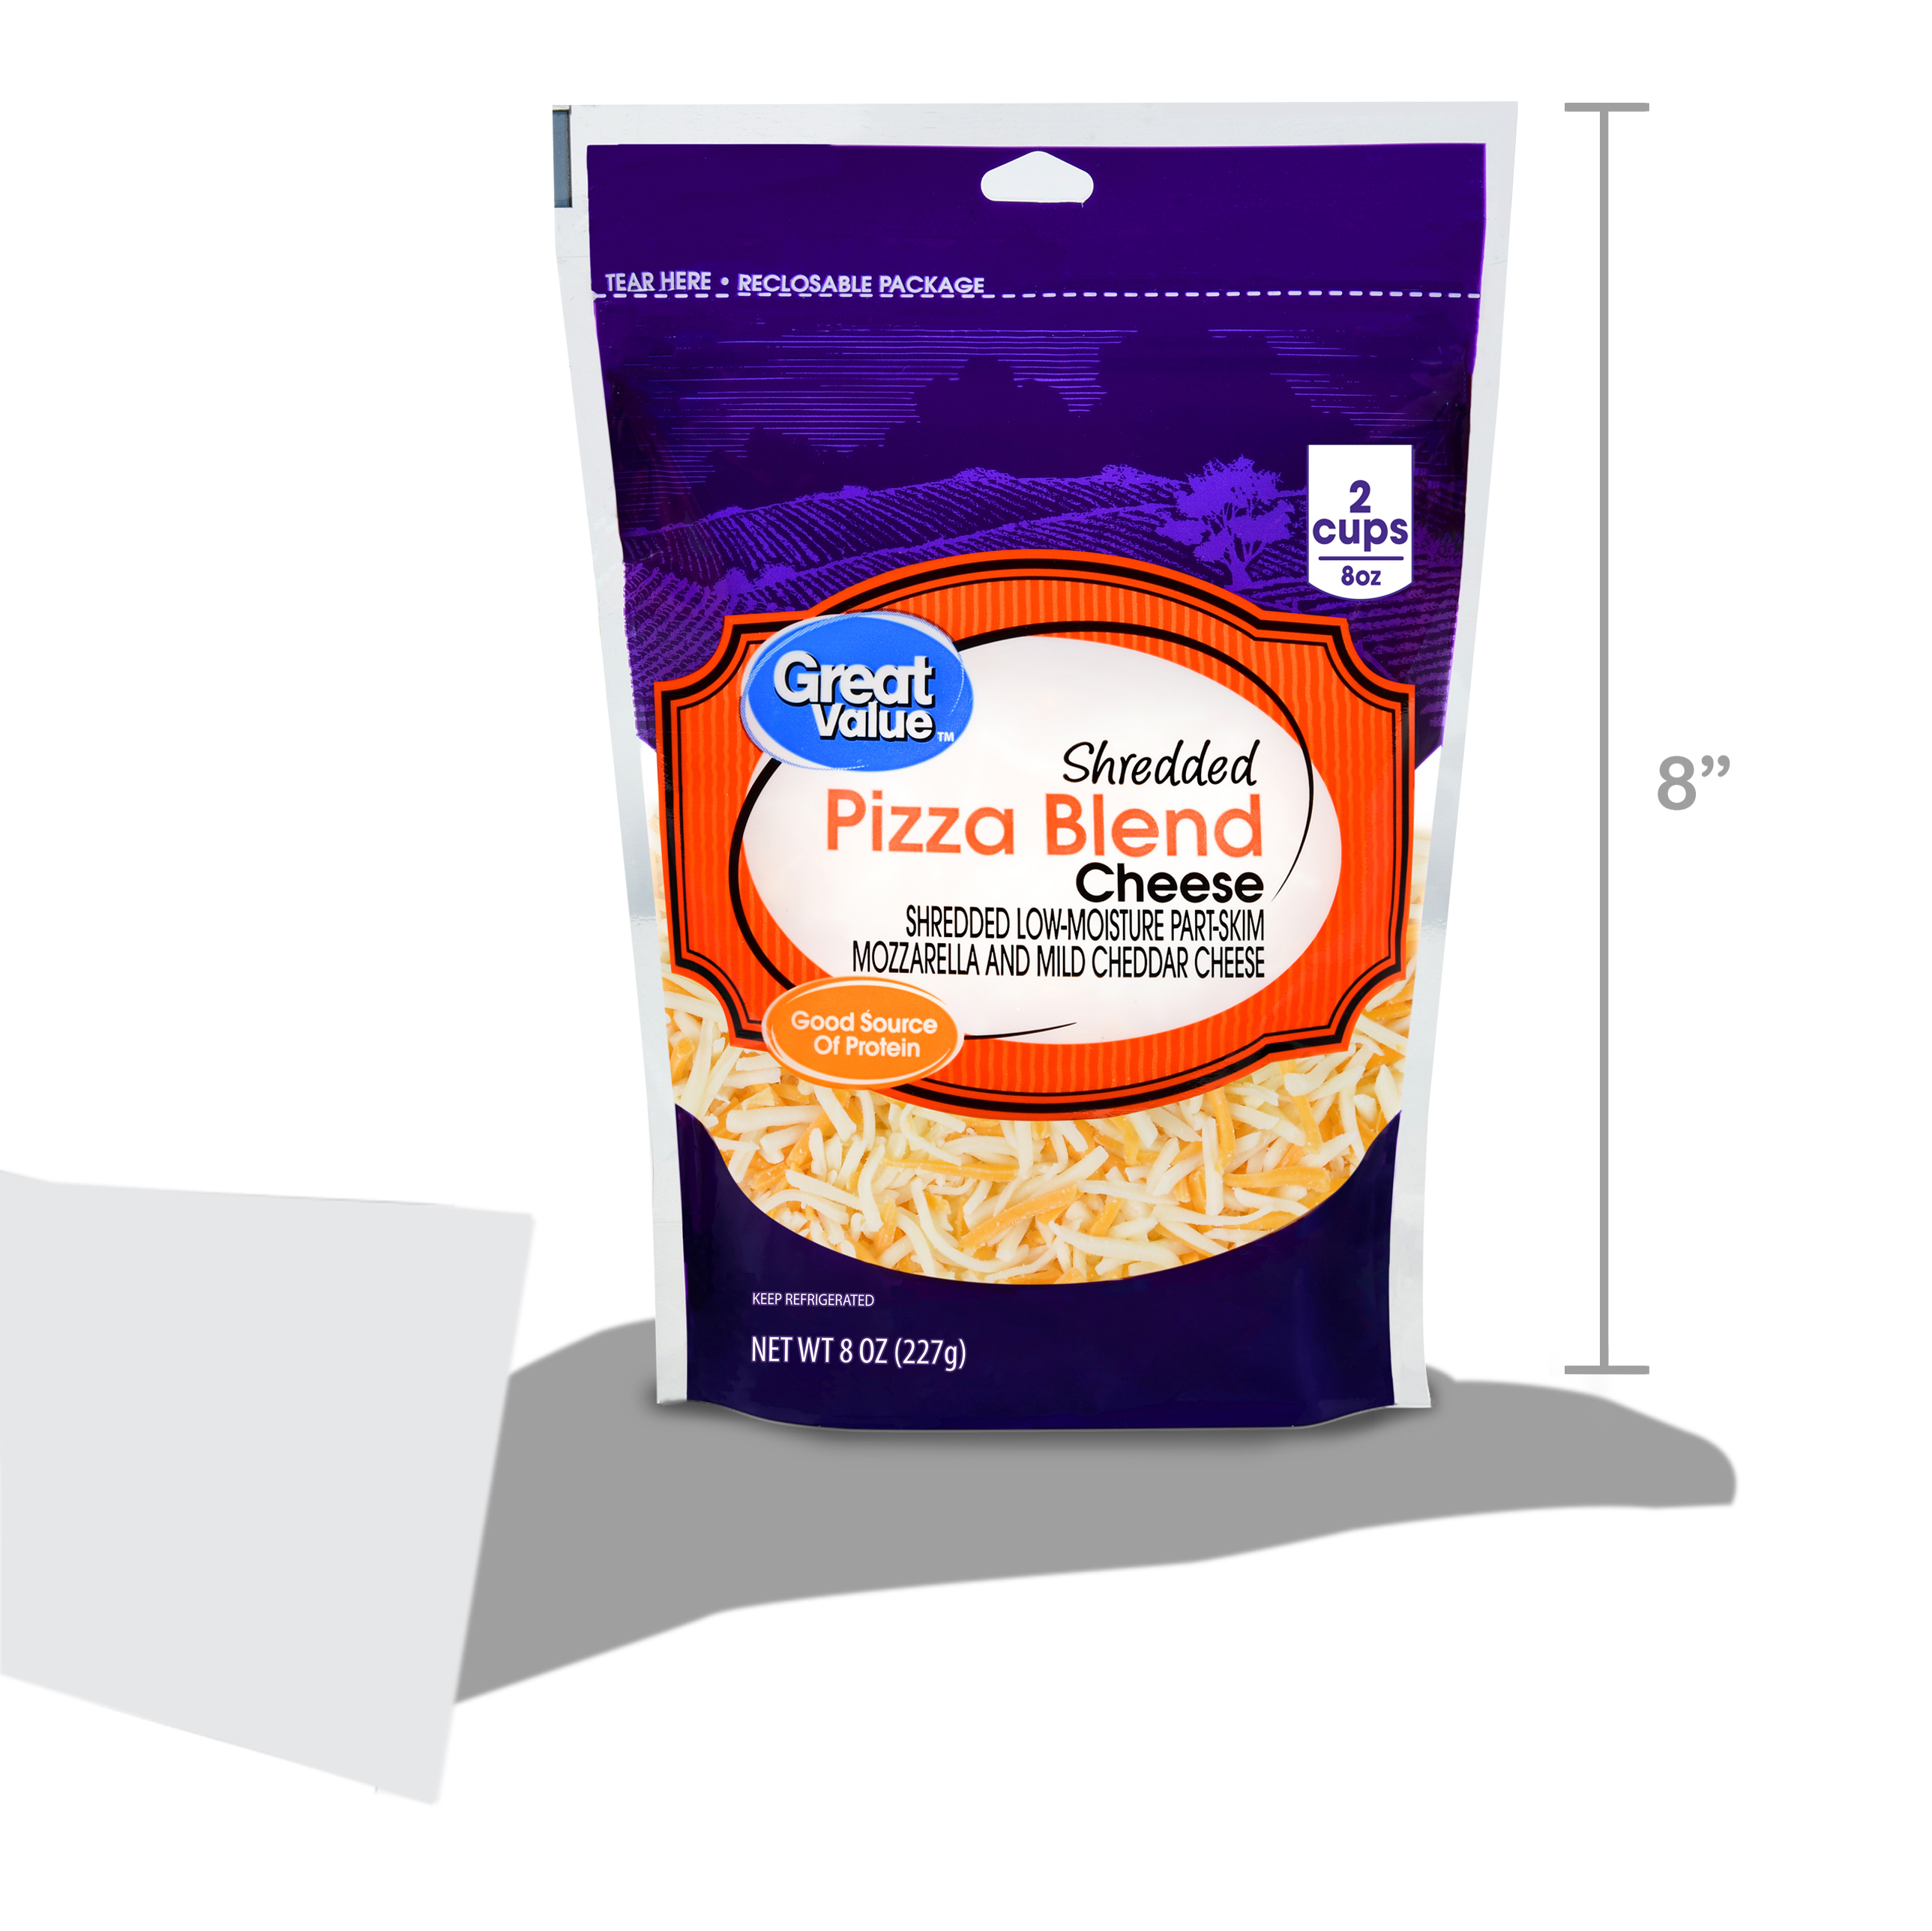 Great Value Shredded Pizza Blend Cheese 8 oz Walmart